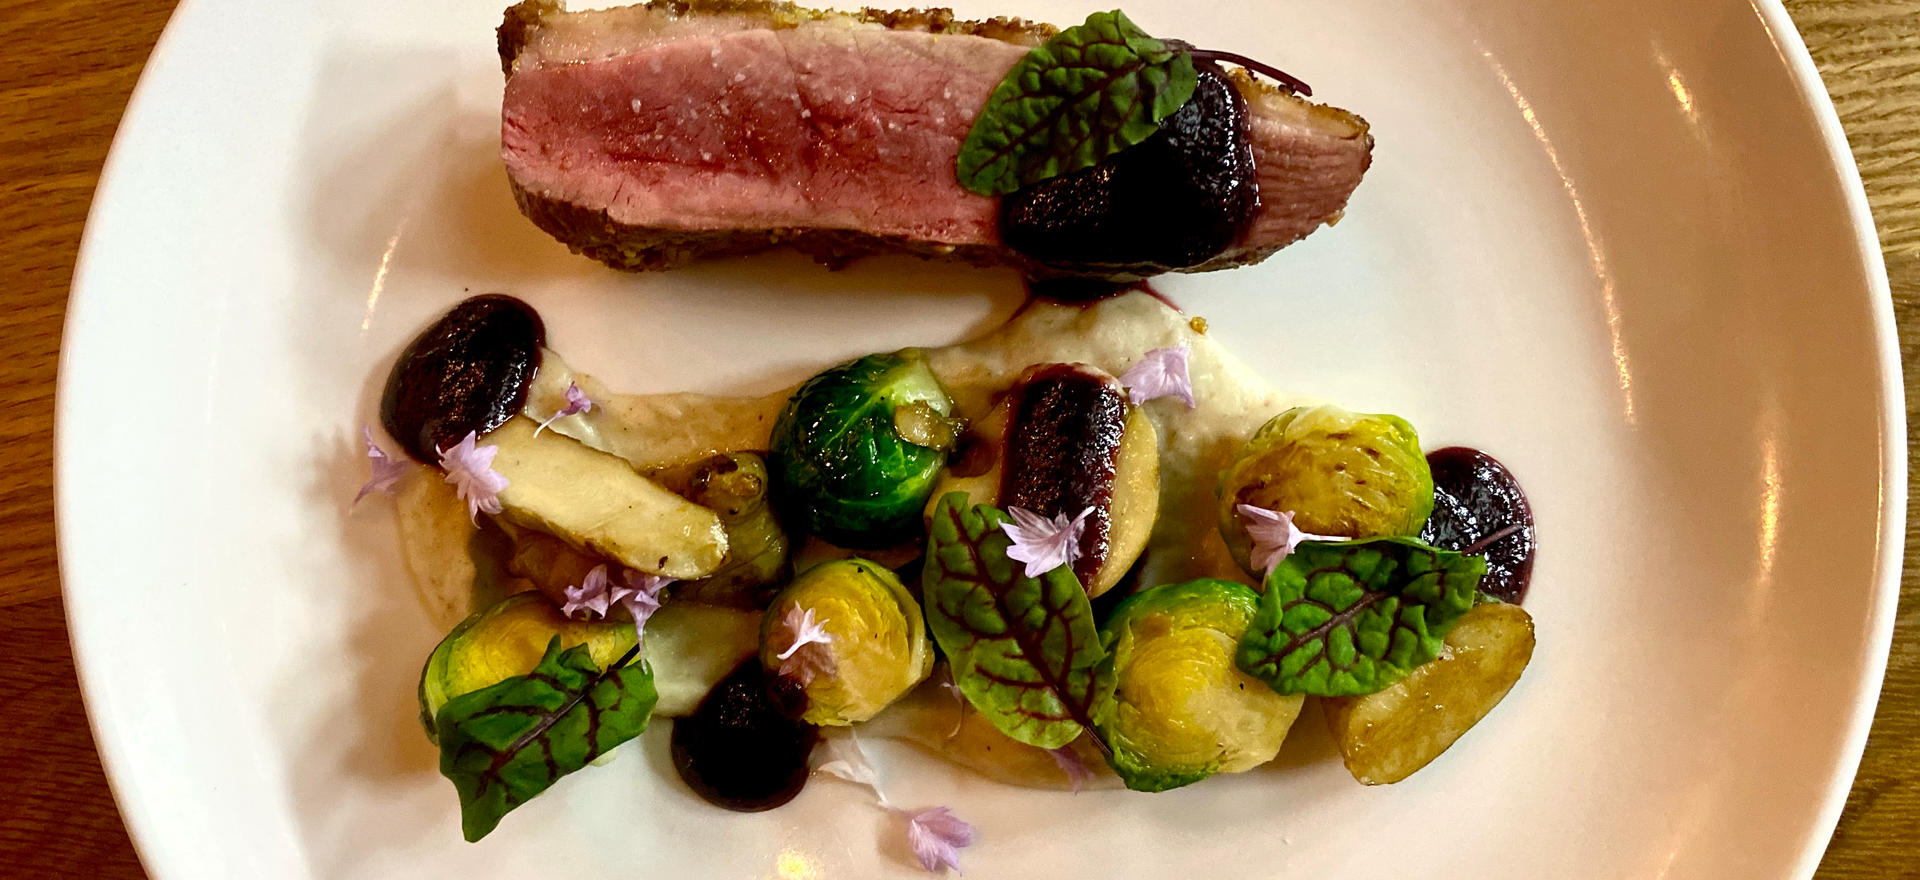 Pistachio Enccrusted Pekin Duck with Sunchokes, Brussel Sprouts, and Cherry Gastrique